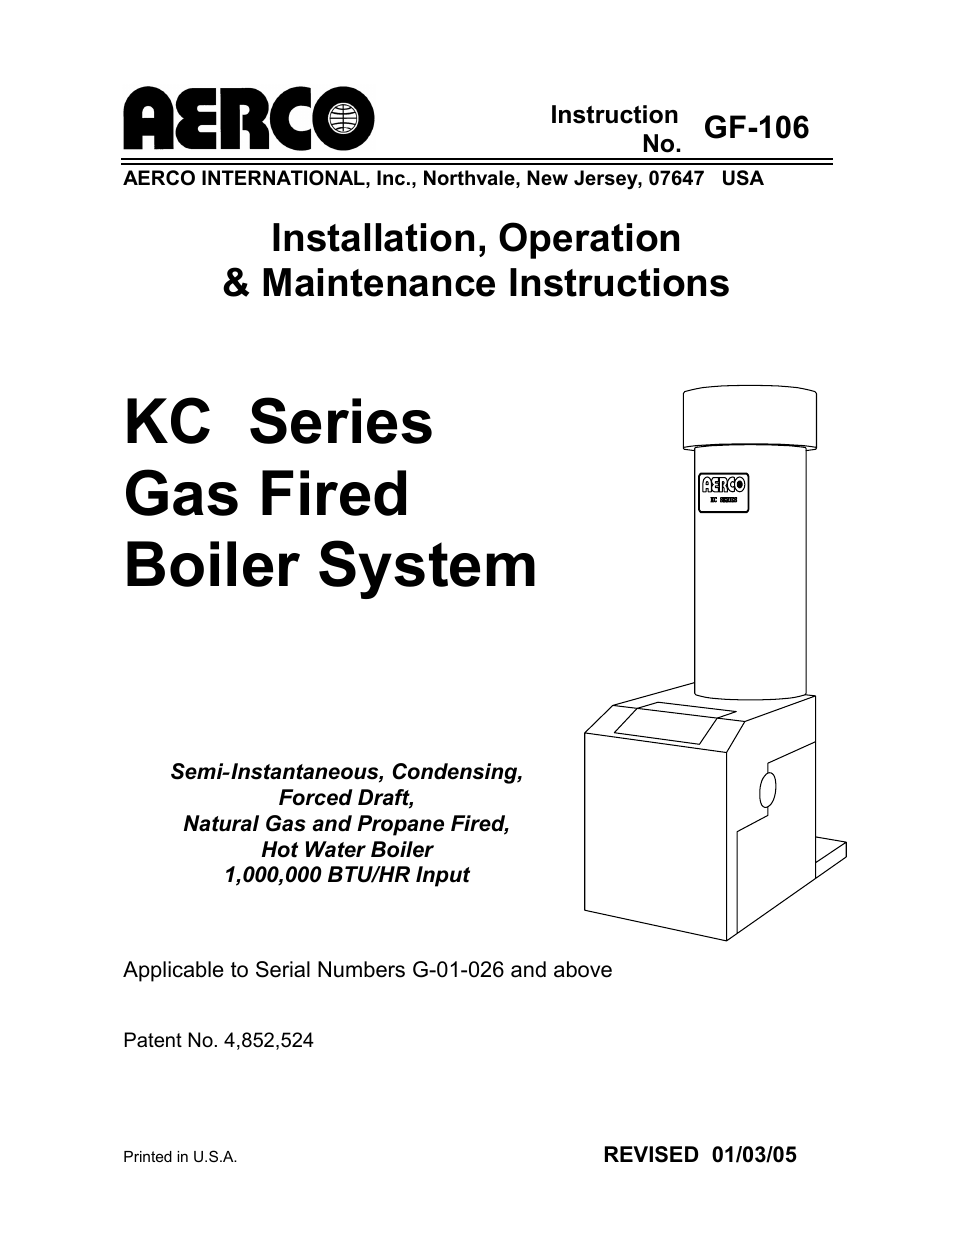 Aerco Boiler Wiring Diagram Great Installation Of System Kc1000 Equipped With Mod Box Controller User Manual Rh Manualsdir Com Control